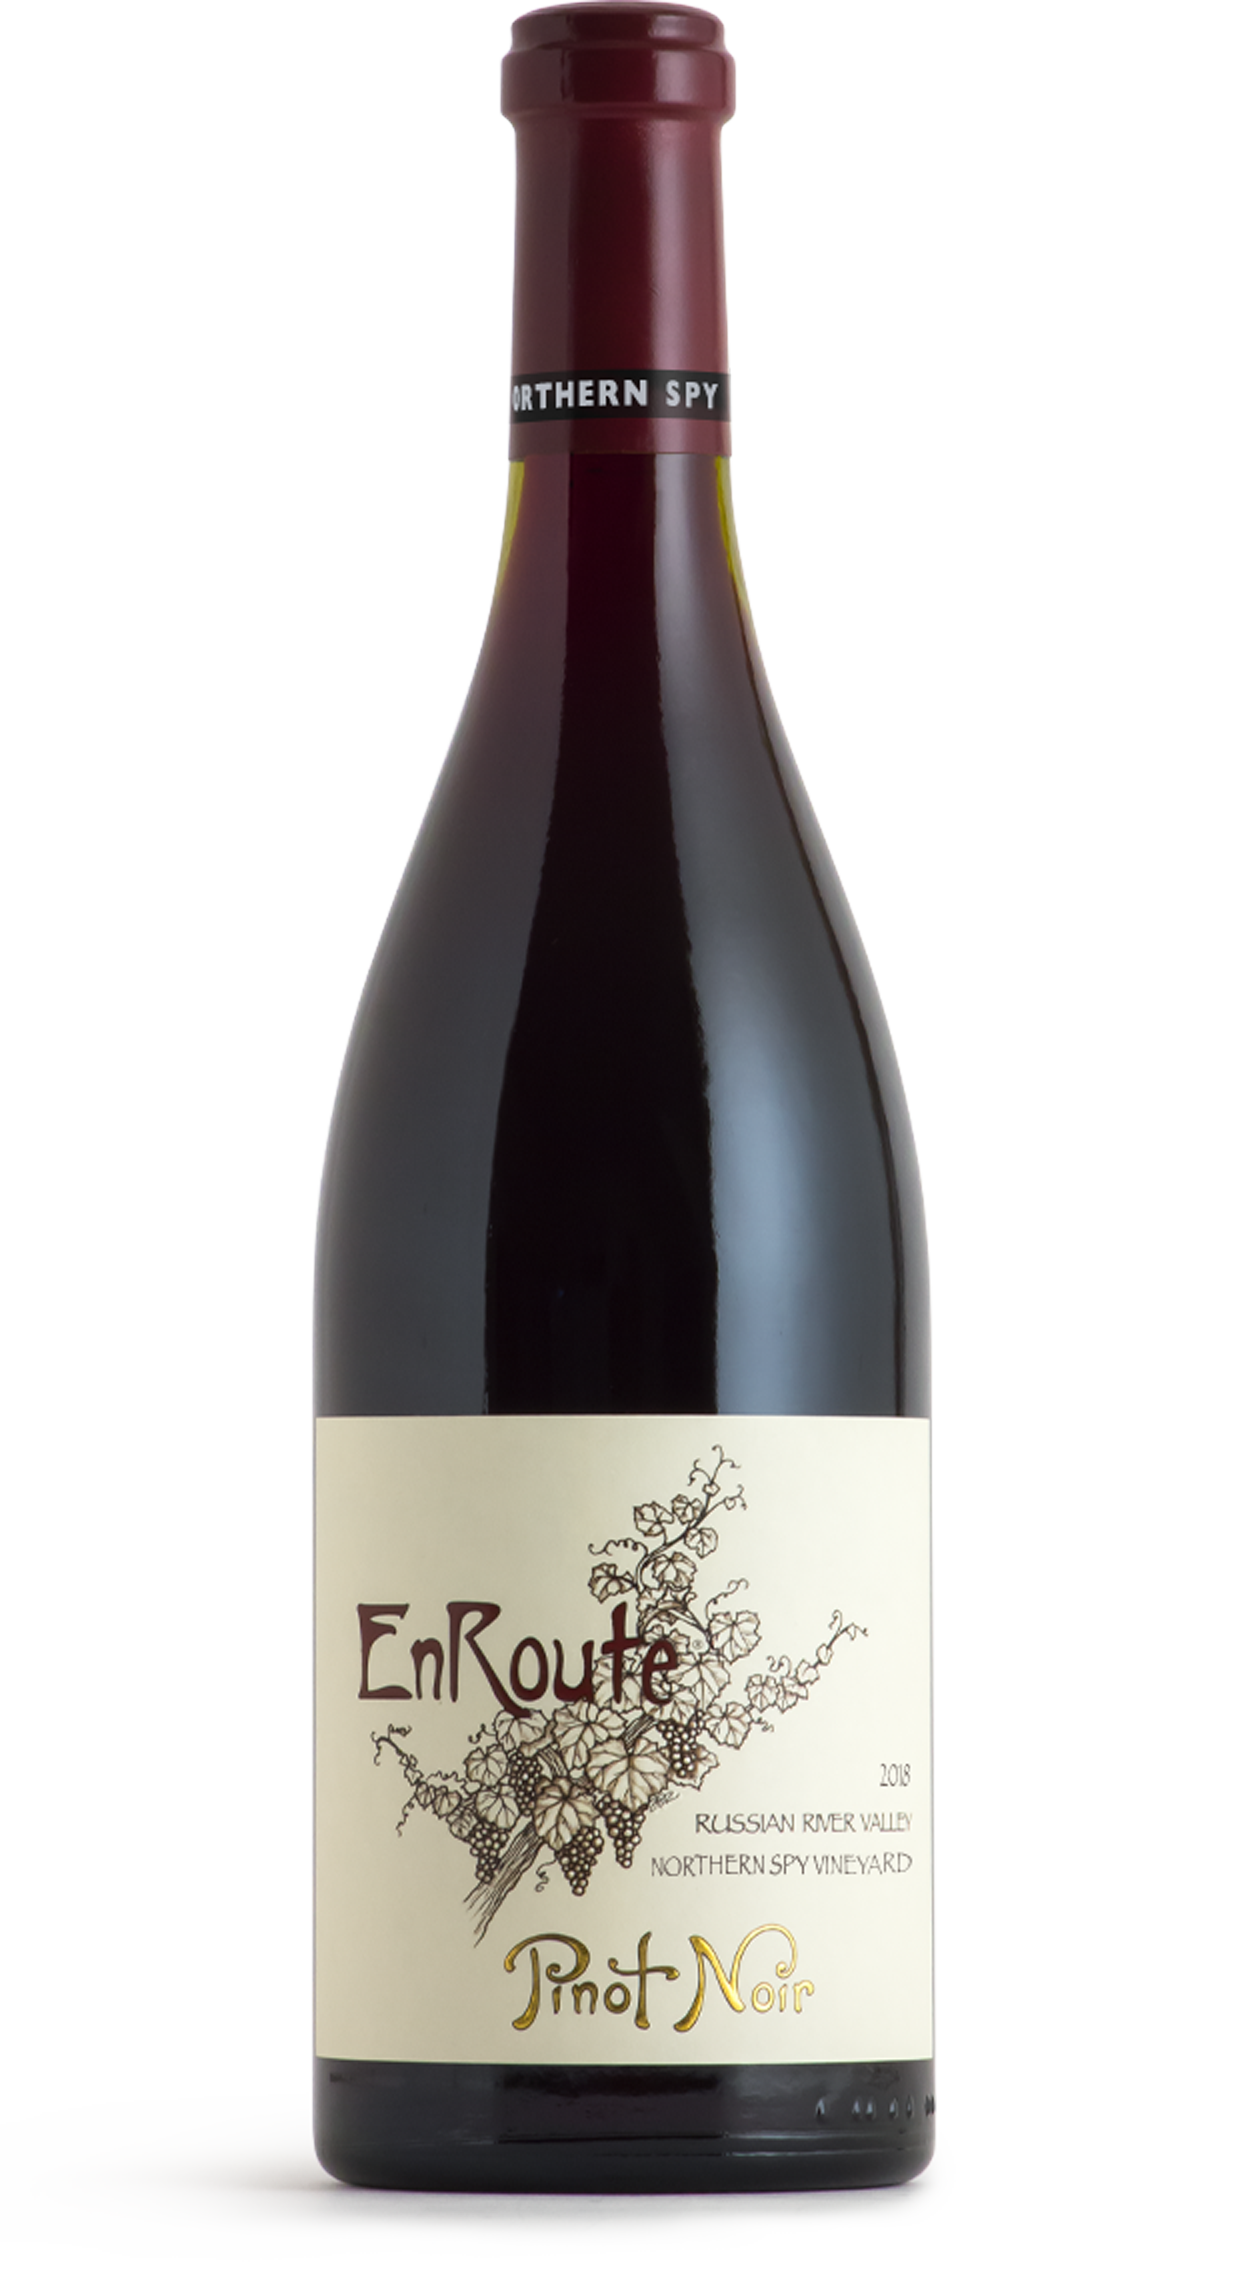 2018 EnRoute Northern Spy Vineyard Pinot Noir